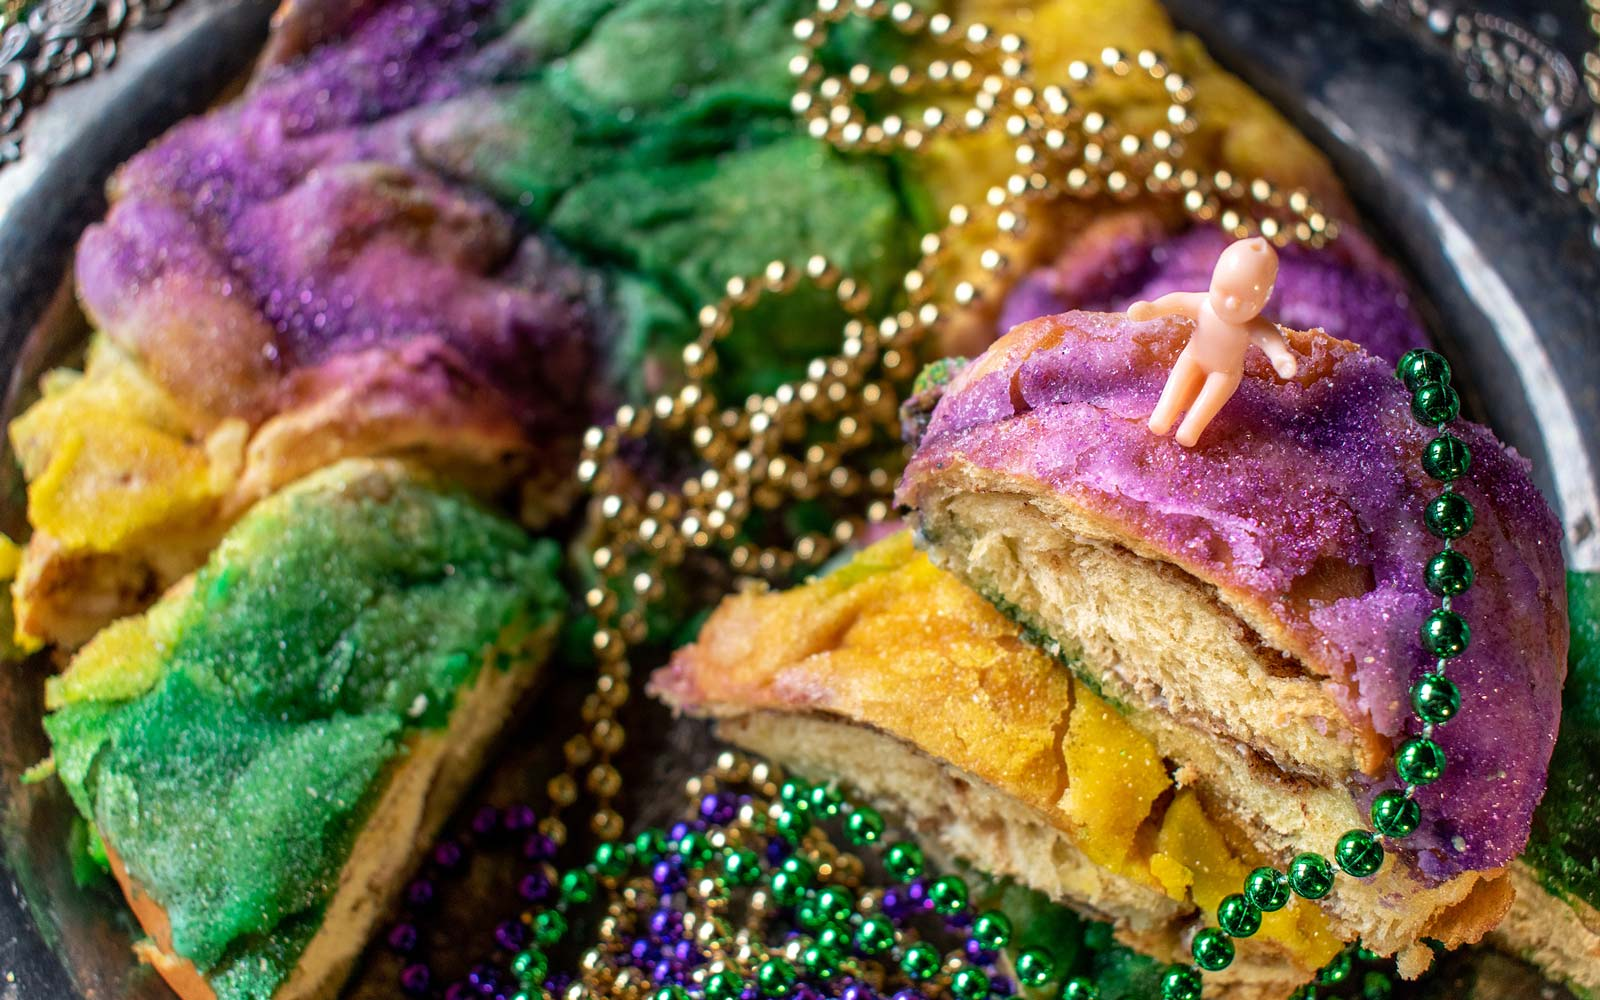 This Is Why There's a Plastic Baby in Your King Cake